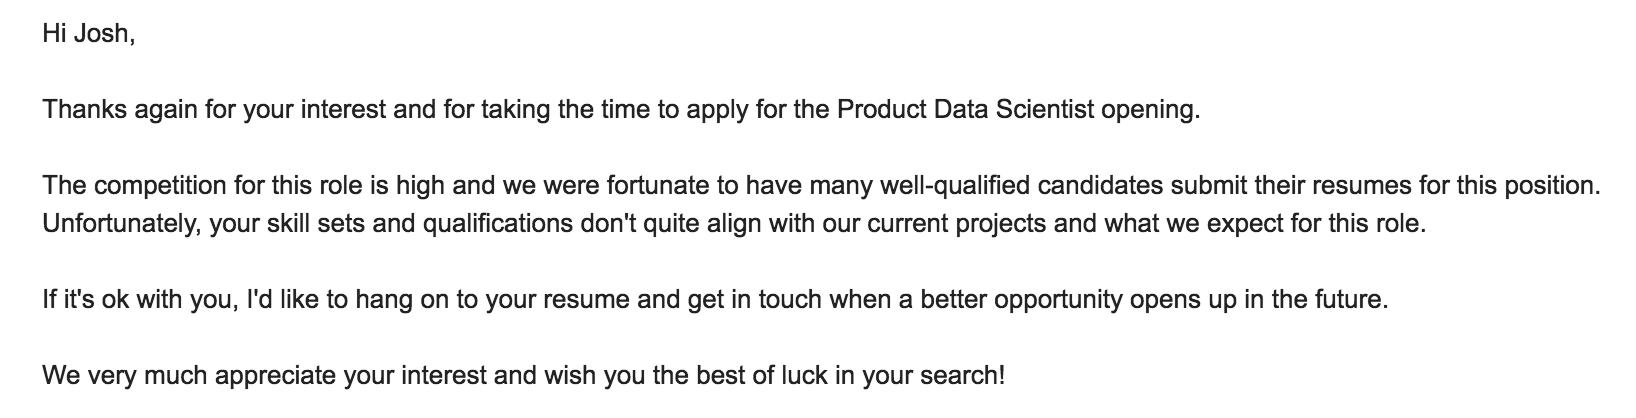 7 Steps to Landing Your Dream Job as a Data Scientist